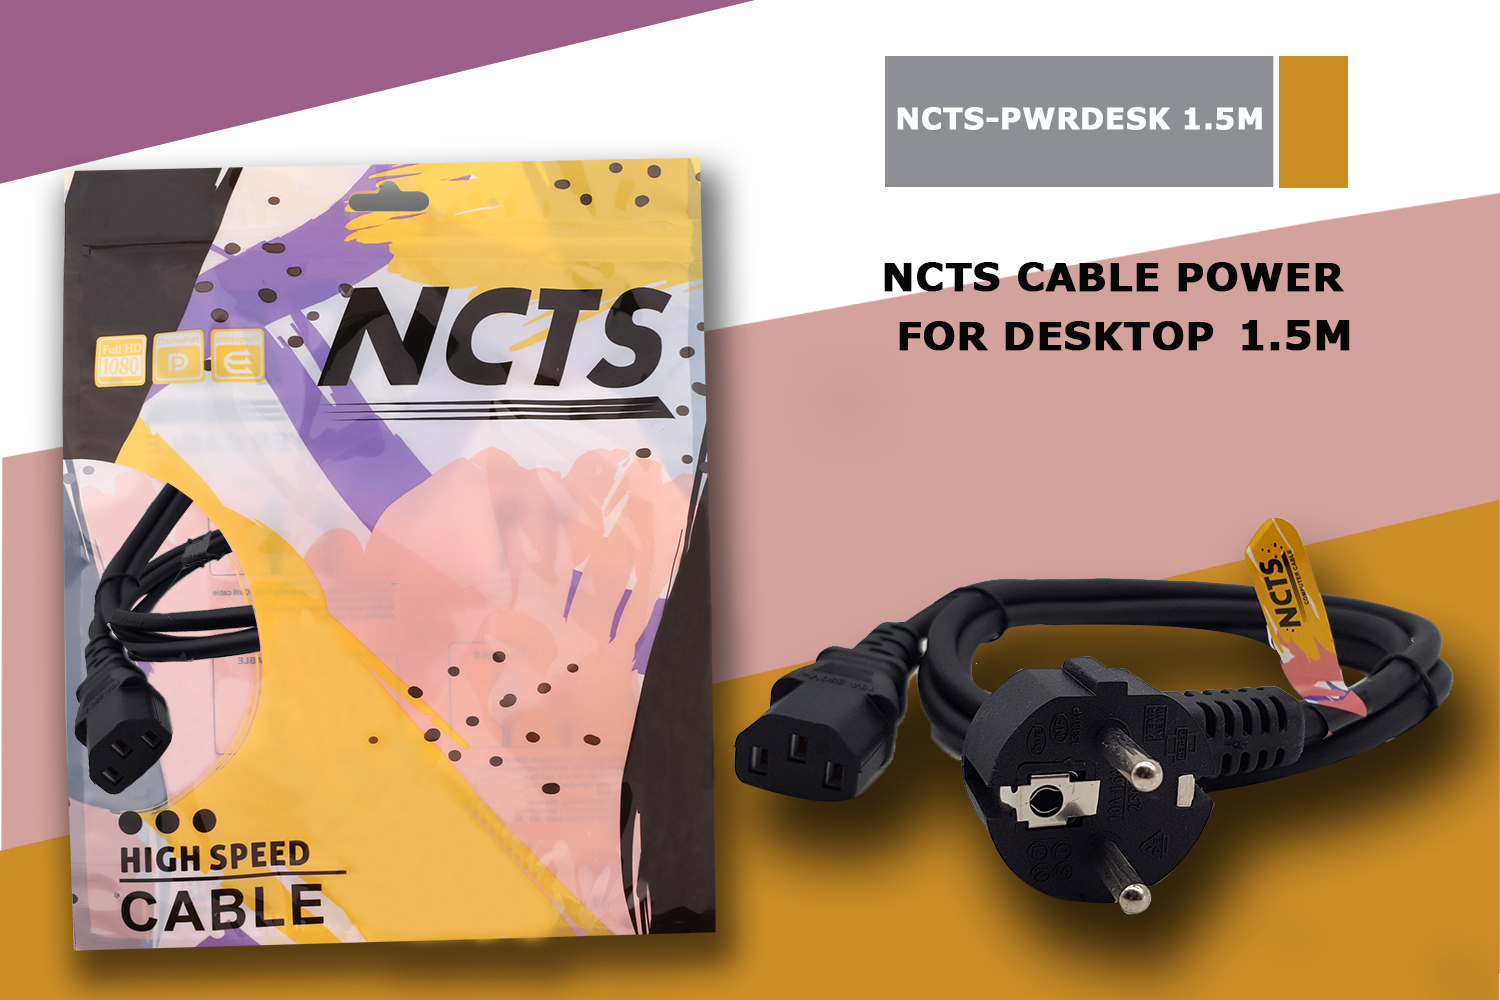 NCTS POWER CABLE FOR DESKTOP 1.5M (Europe  power cable Bare copper, Support 800 Watts Household appliance)